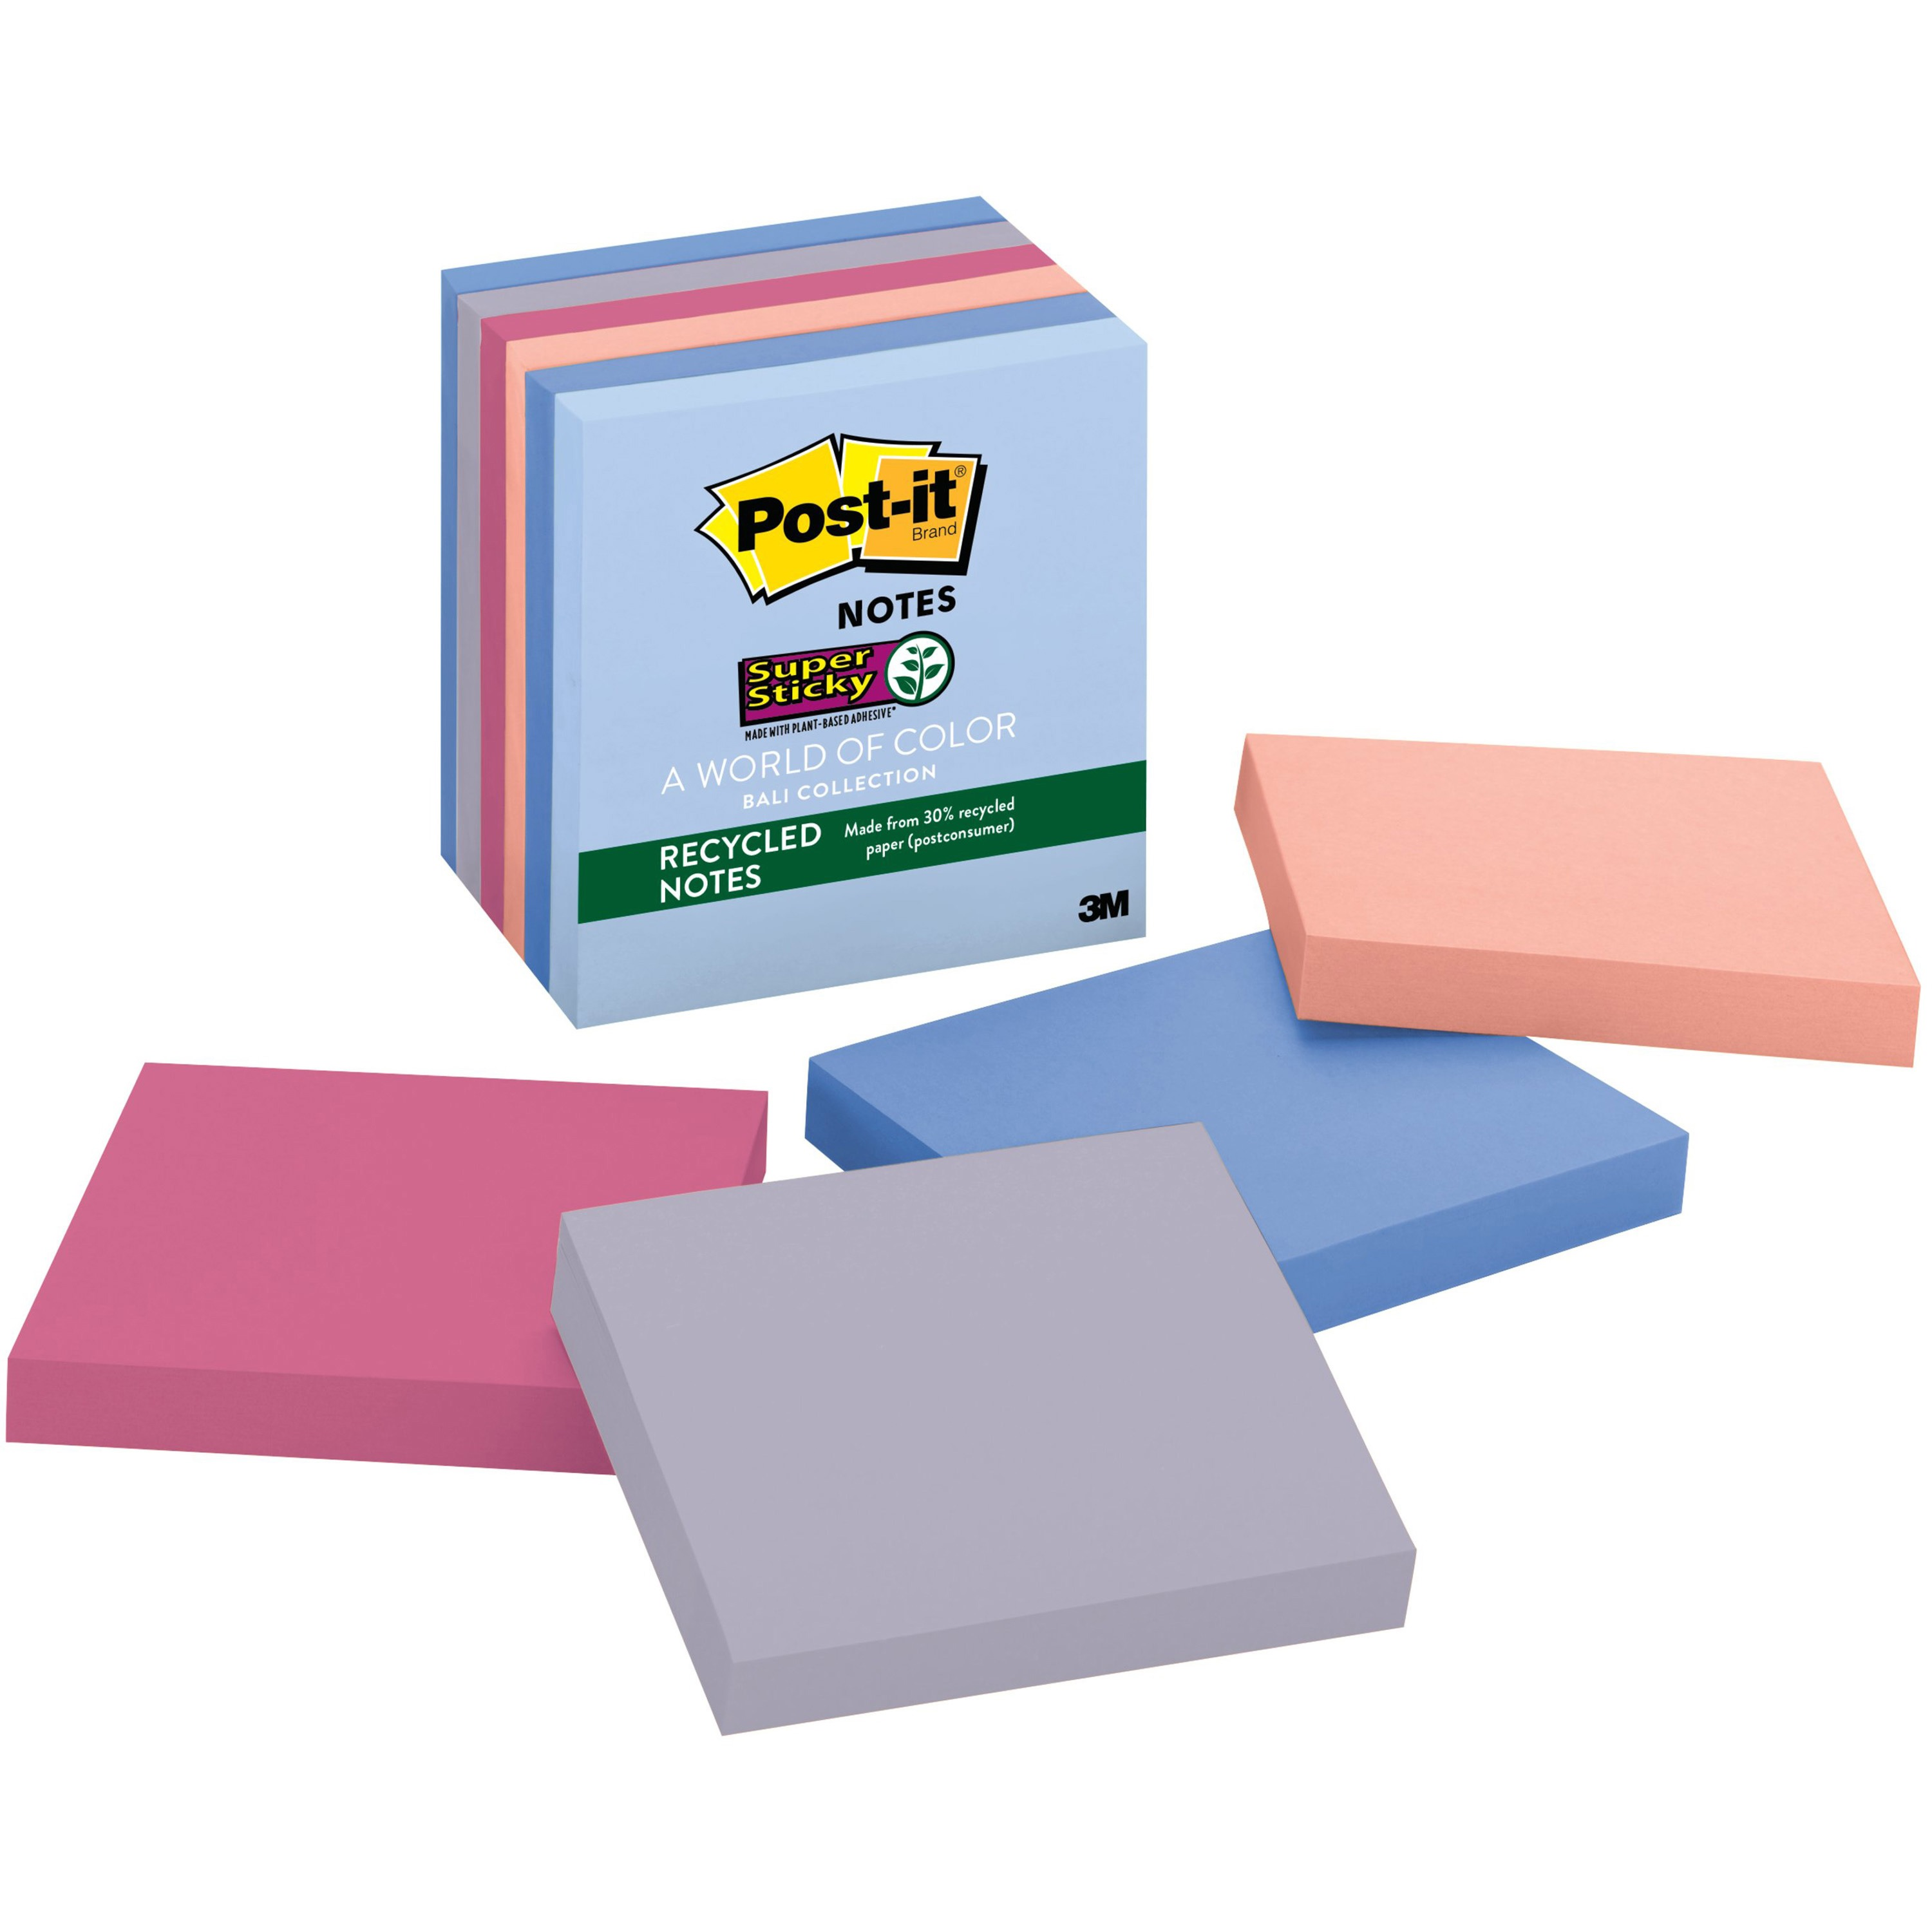 Post-it Greener Super Sticky Recycled Notes 6 Pack, Bali Collection